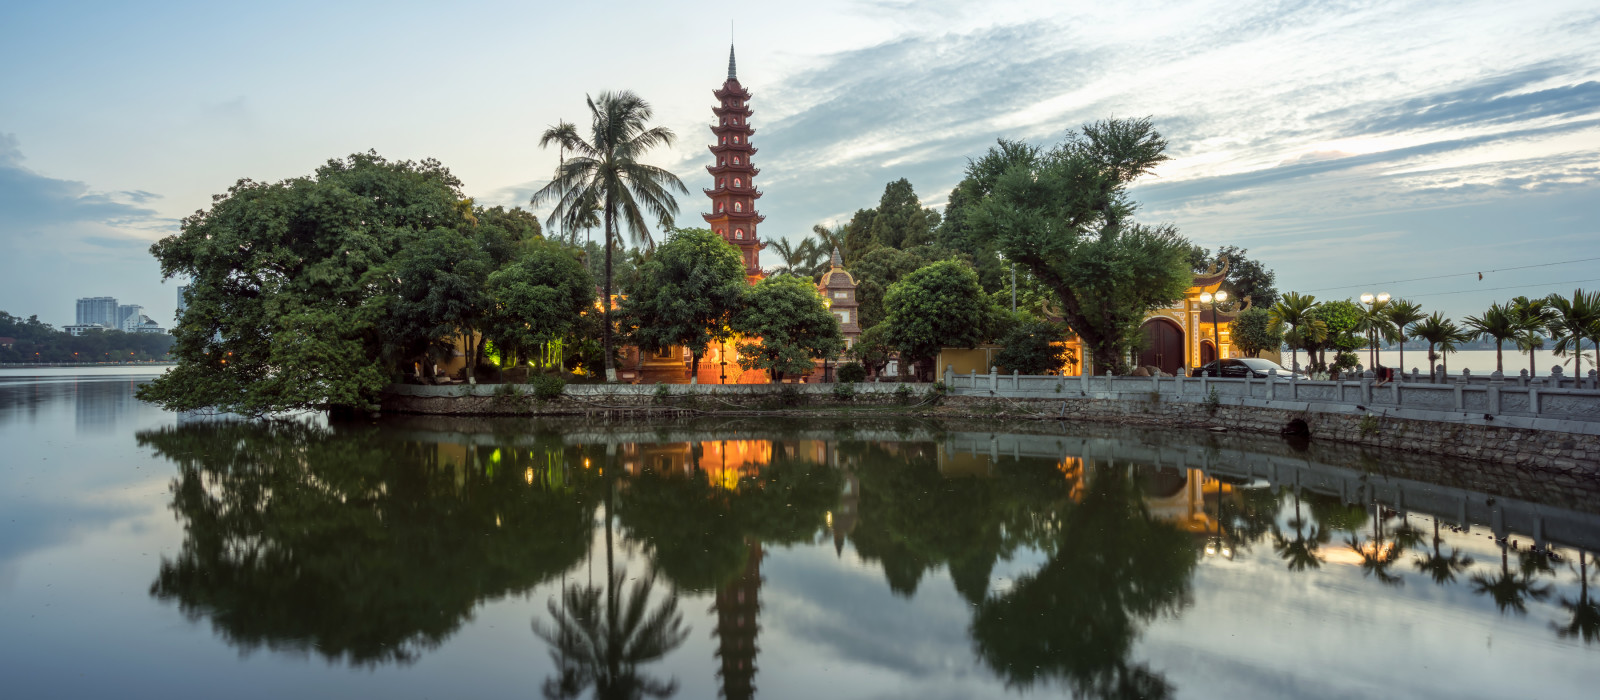 Tran Quoc pagoda during sunset time, the oldest temple in Hanoi, Vietnam. Hanoi cityscape